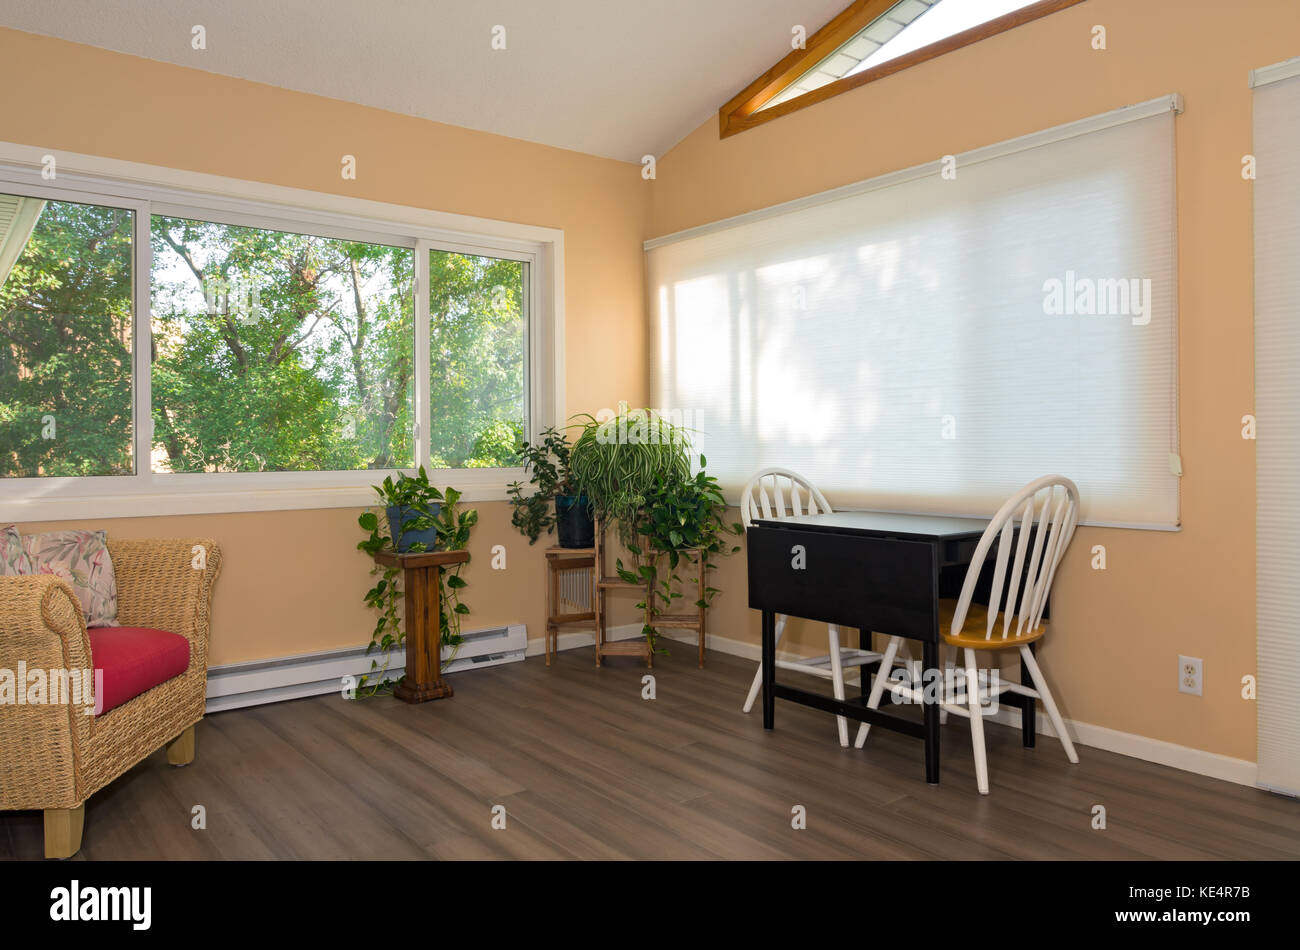 interior of remodeled sunroom addition to home and decor including